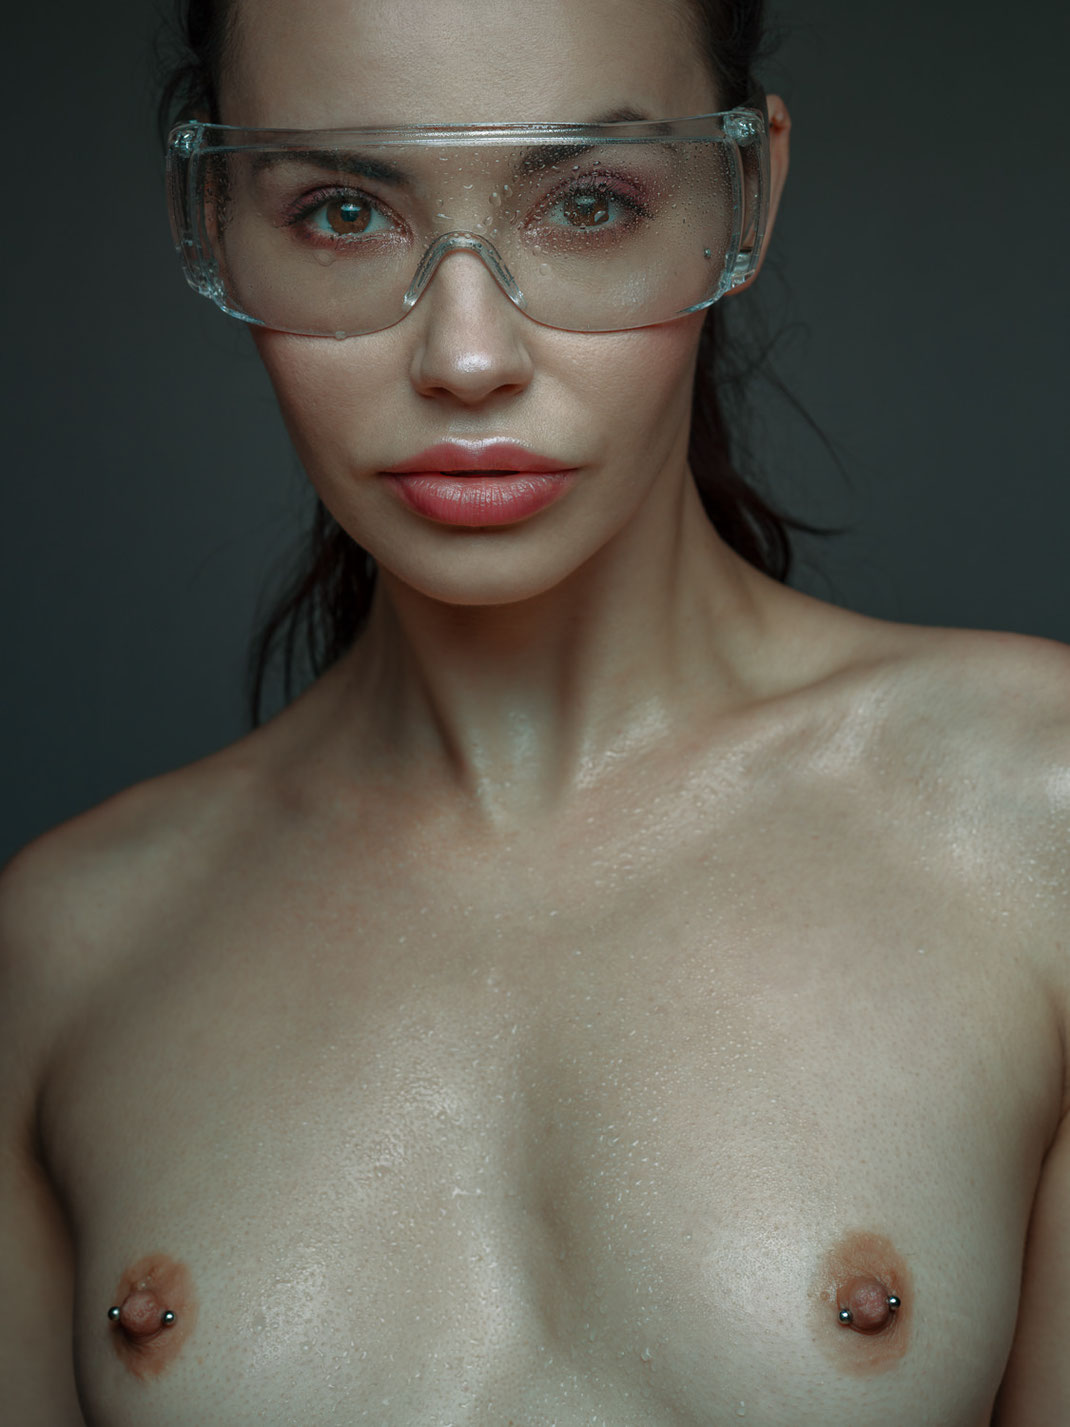 Dripping - Eliska - Markus Hertzsch - Model - Girl - Portrait - Water - Drop - Face - Dripping - Body - Nude